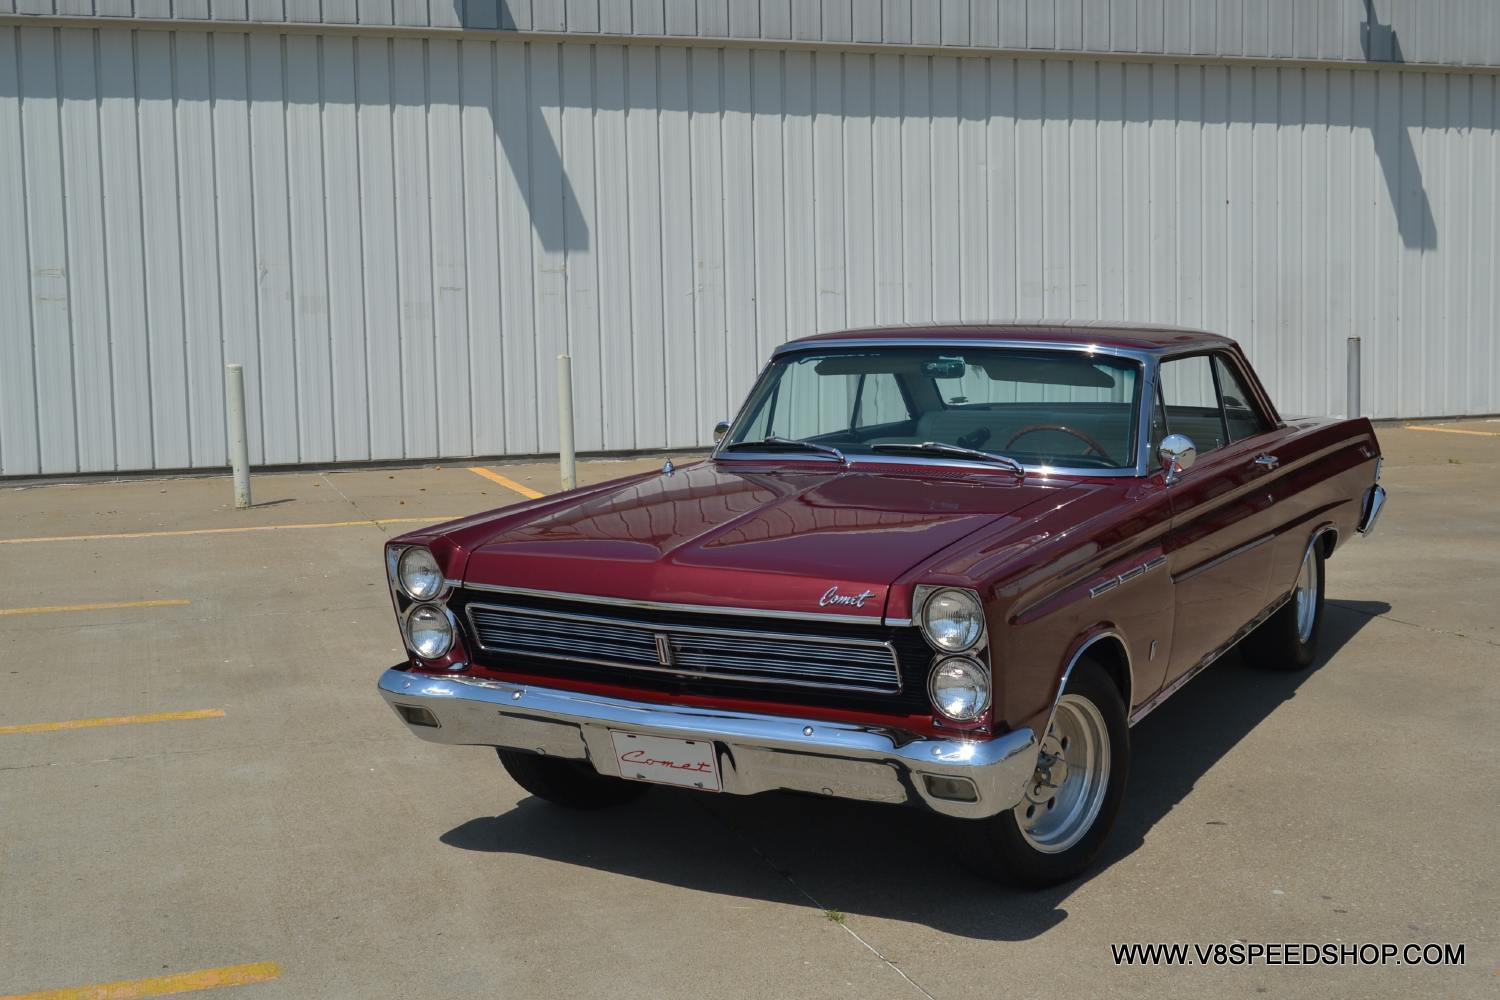 1965 Mercury Comet Cyclone Supercharged 302 Gear Vendor Overdrive at